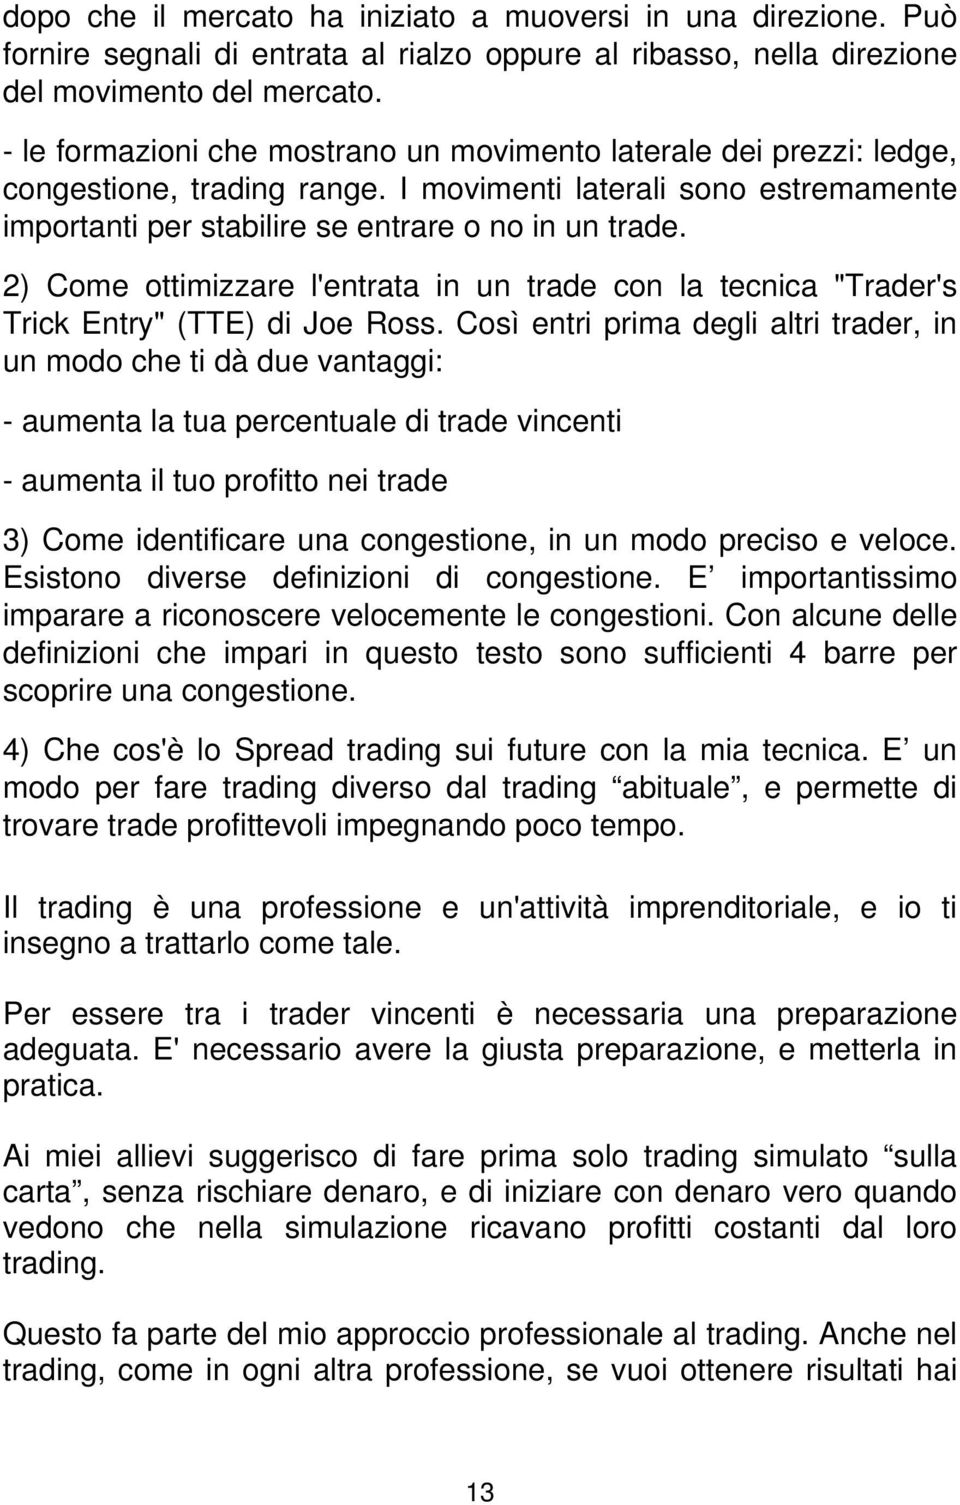 "2) Come ottimizzare l'entrata in un trade con la tecnica ""Trader's Trick Entry"" (TTE) di Joe Ross."